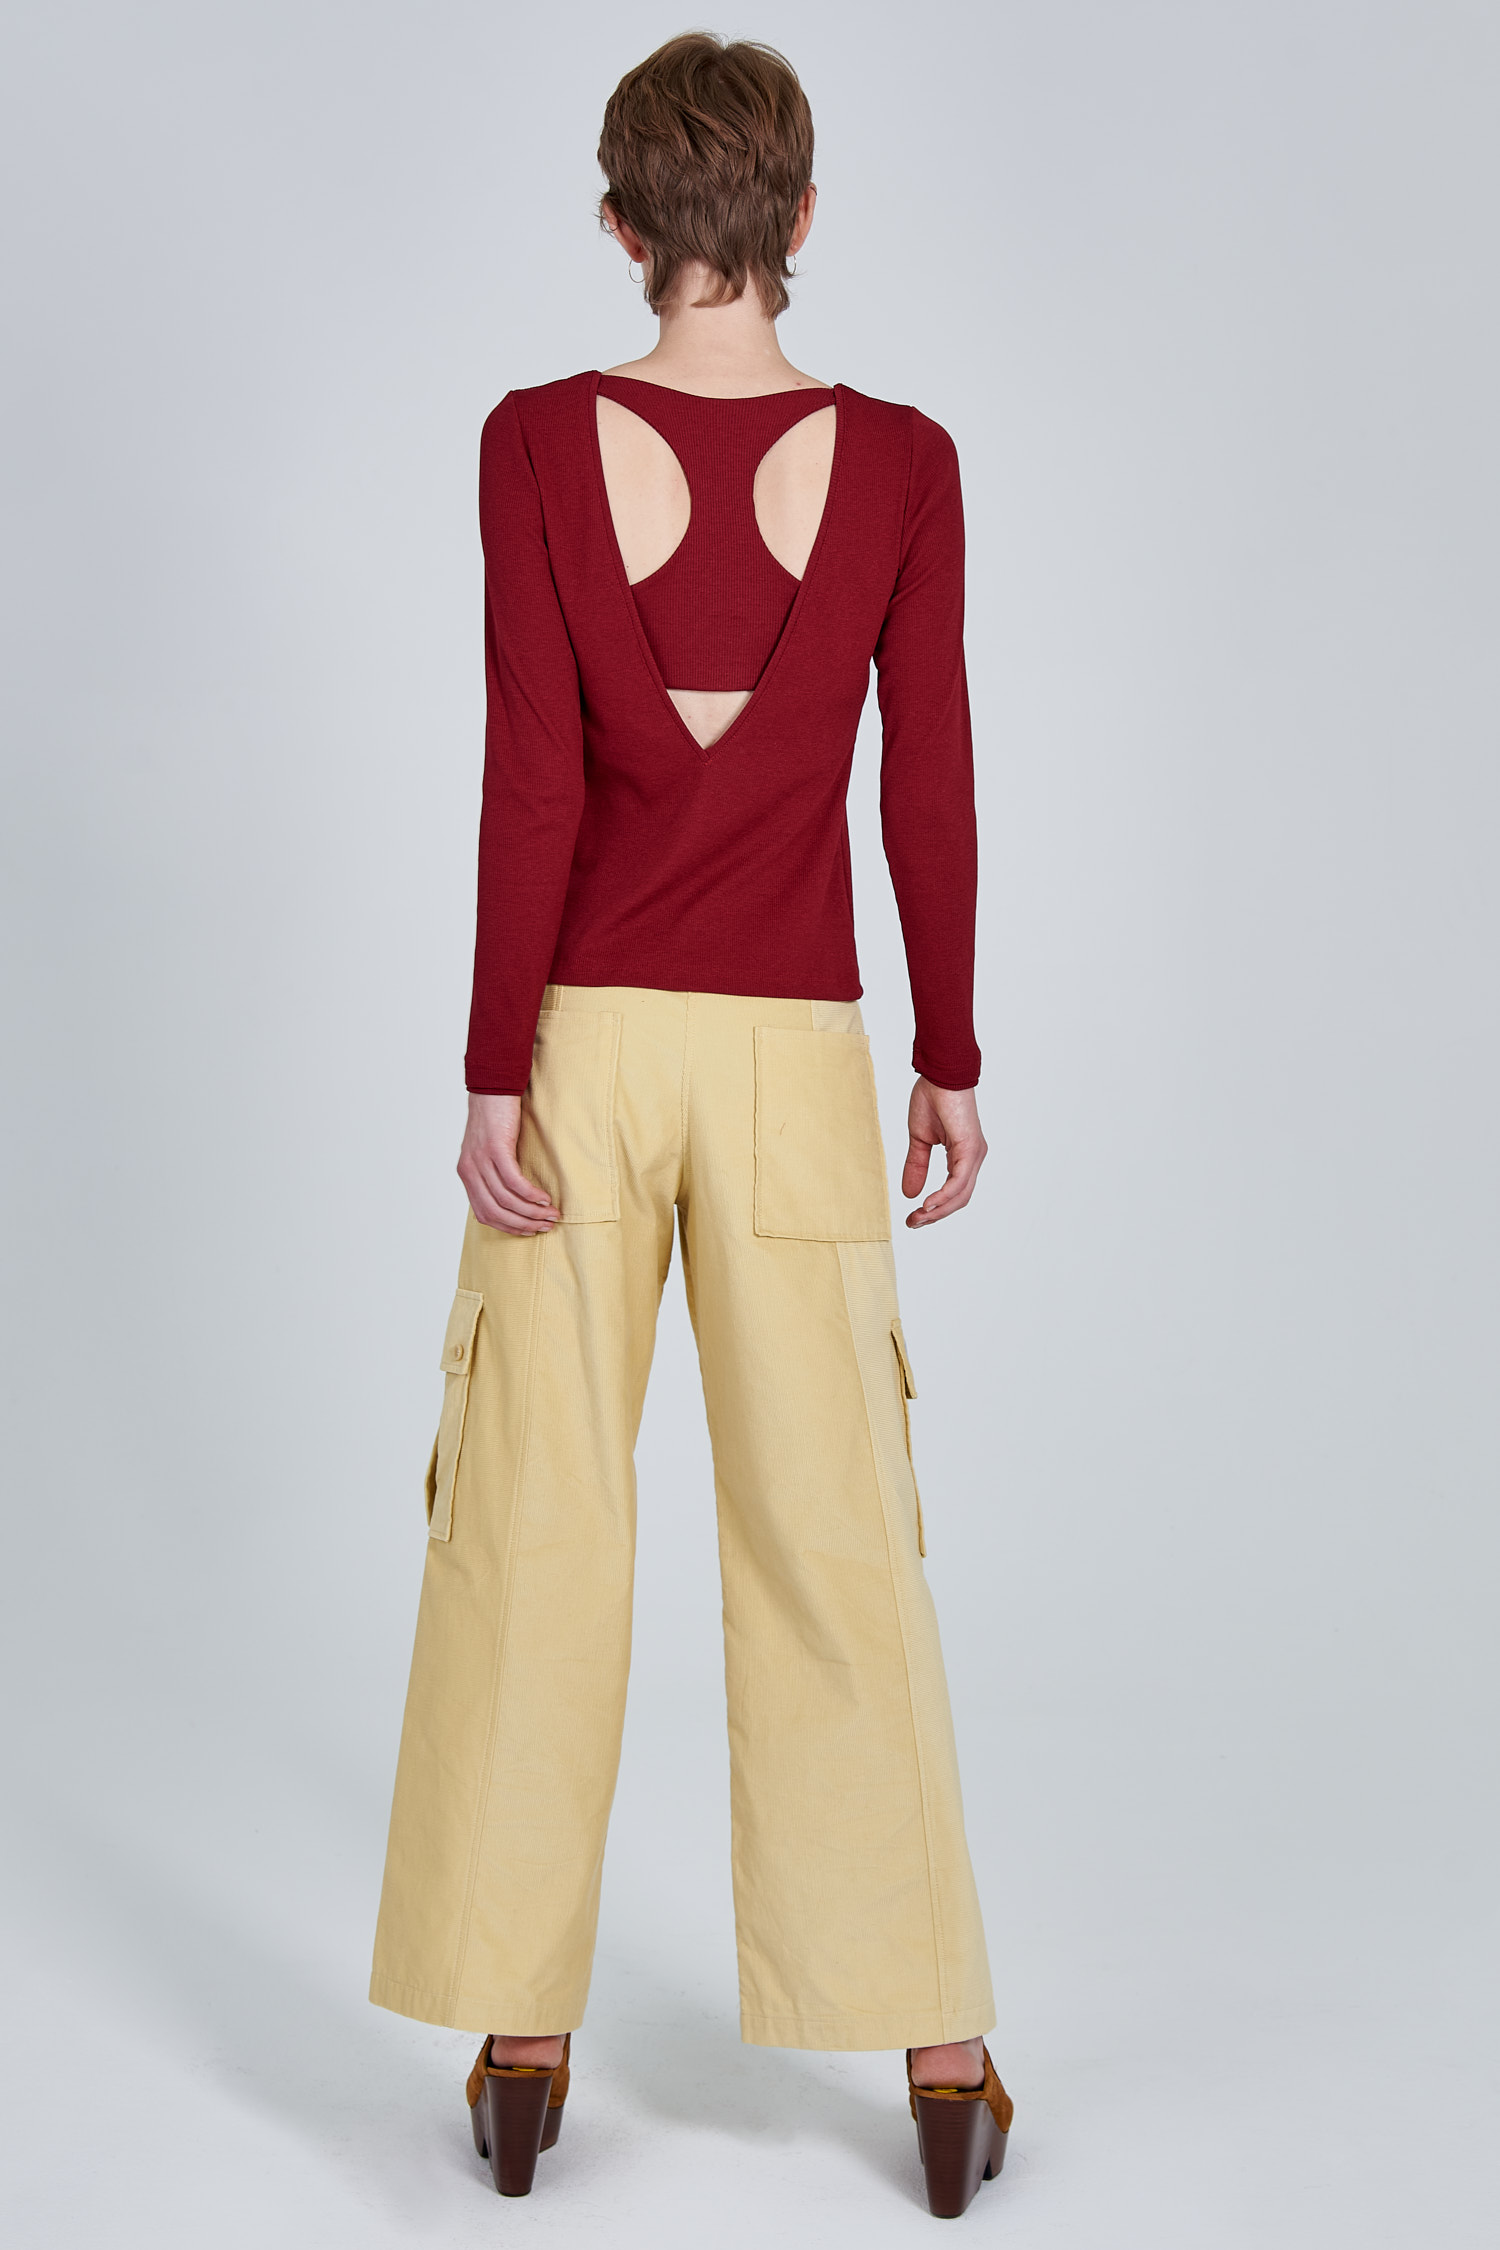 Acephala Fw 2020 21 Red Longsleeve Corduroy Trousers Female Back